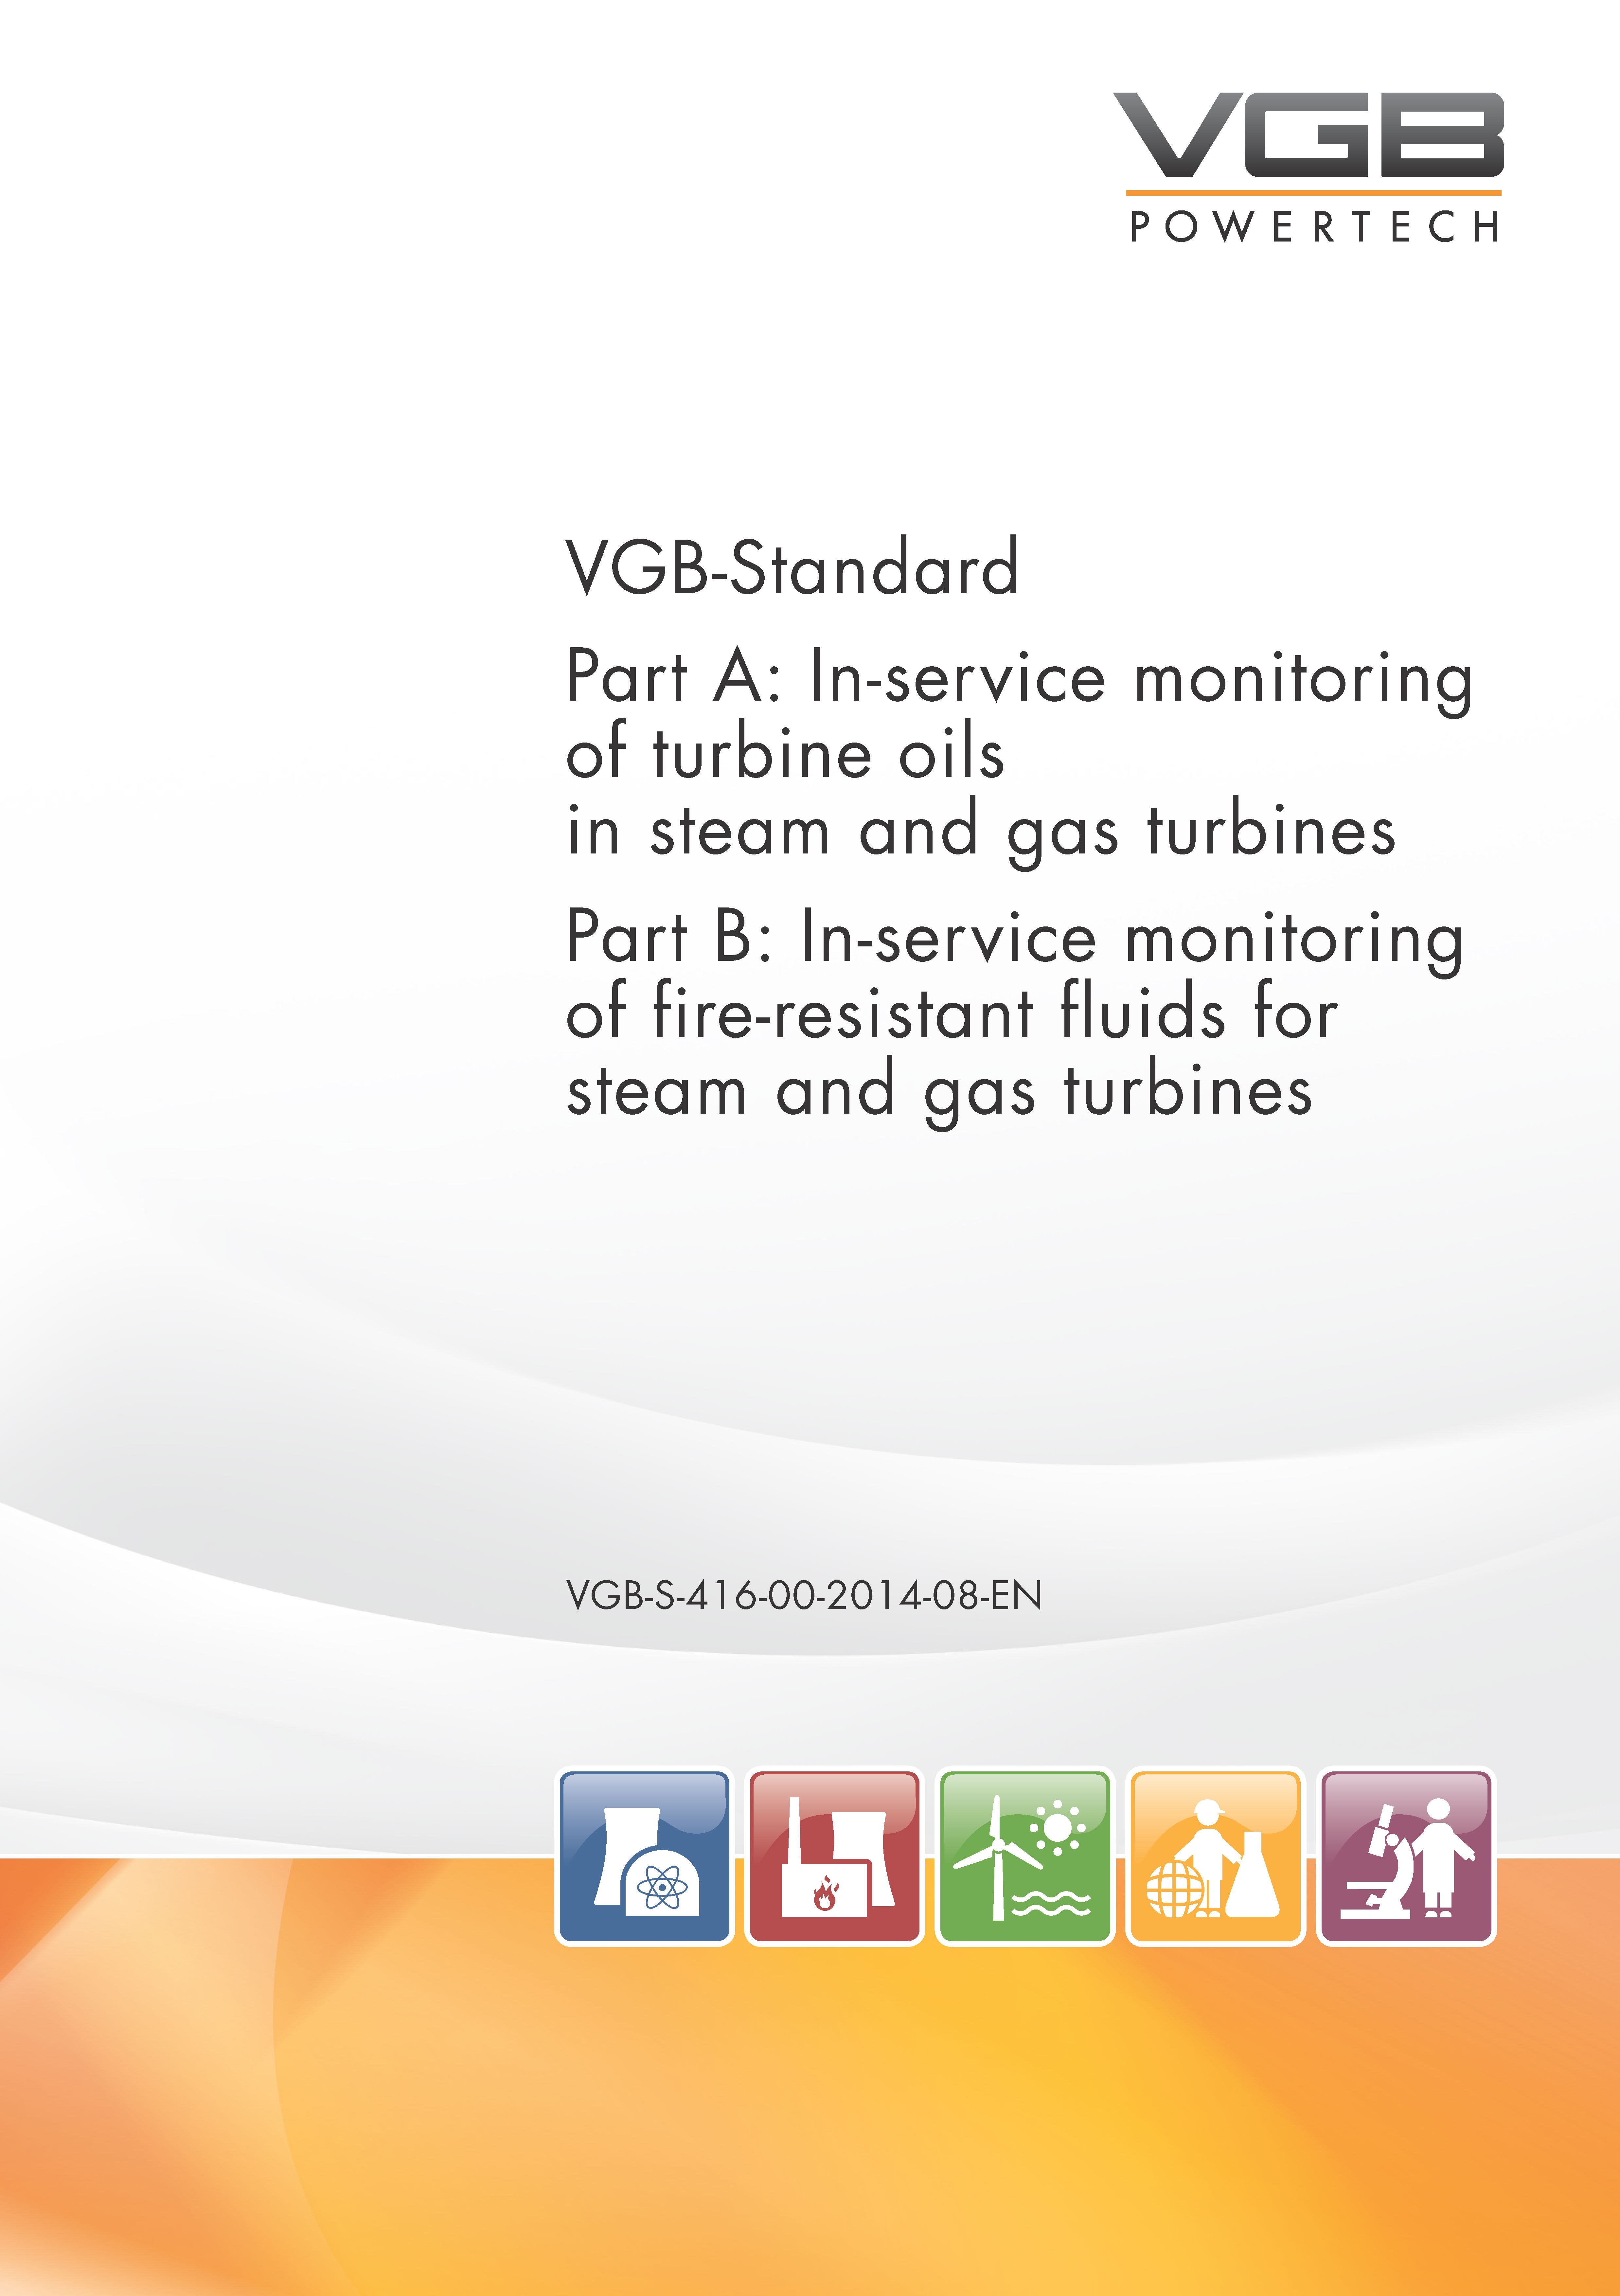 VGB S 416 00 2014 08 EN Part A In service monitoring of turbine